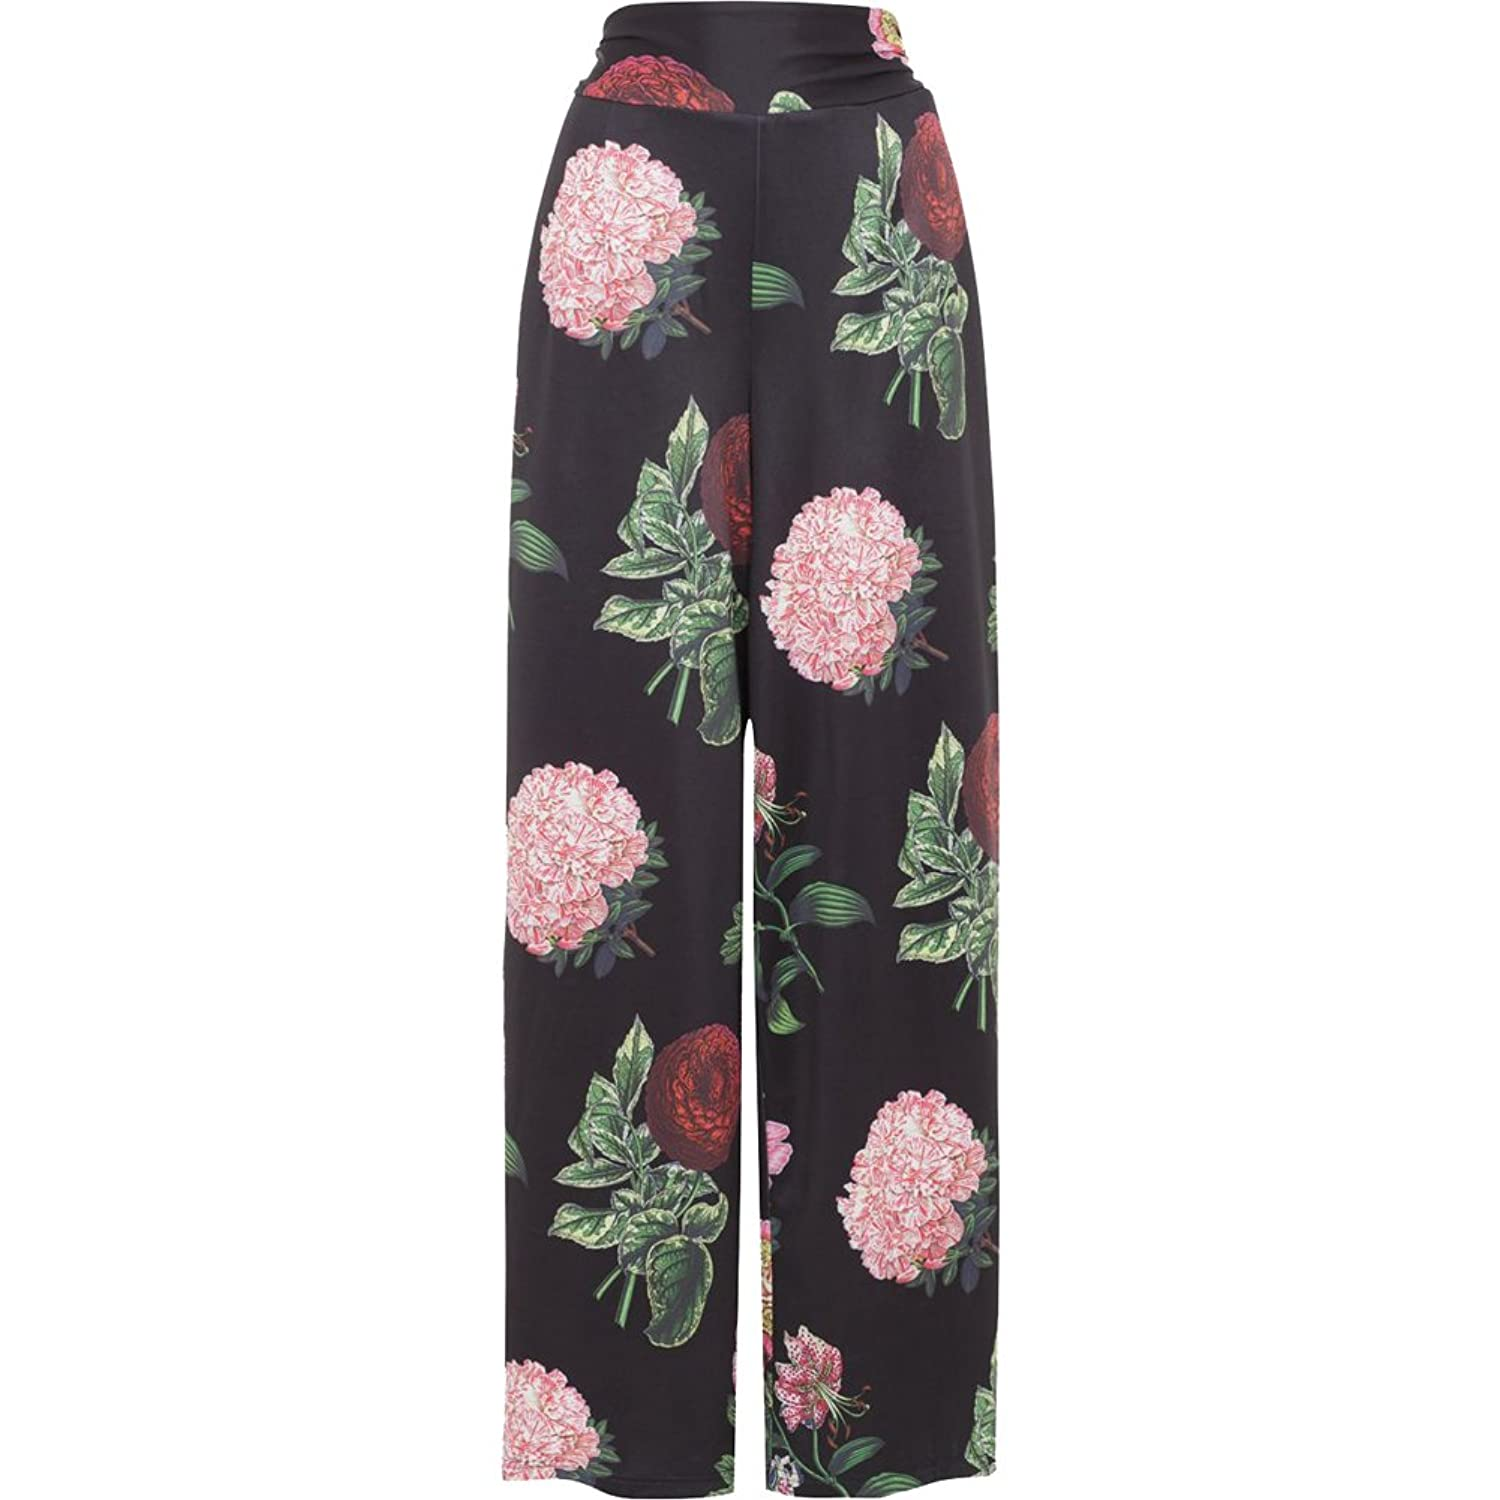 1930s Women's Pants and Beach Pajamas  NATALIA Large Vintage Floral Print Pants Black $57.99 AT vintagedancer.com